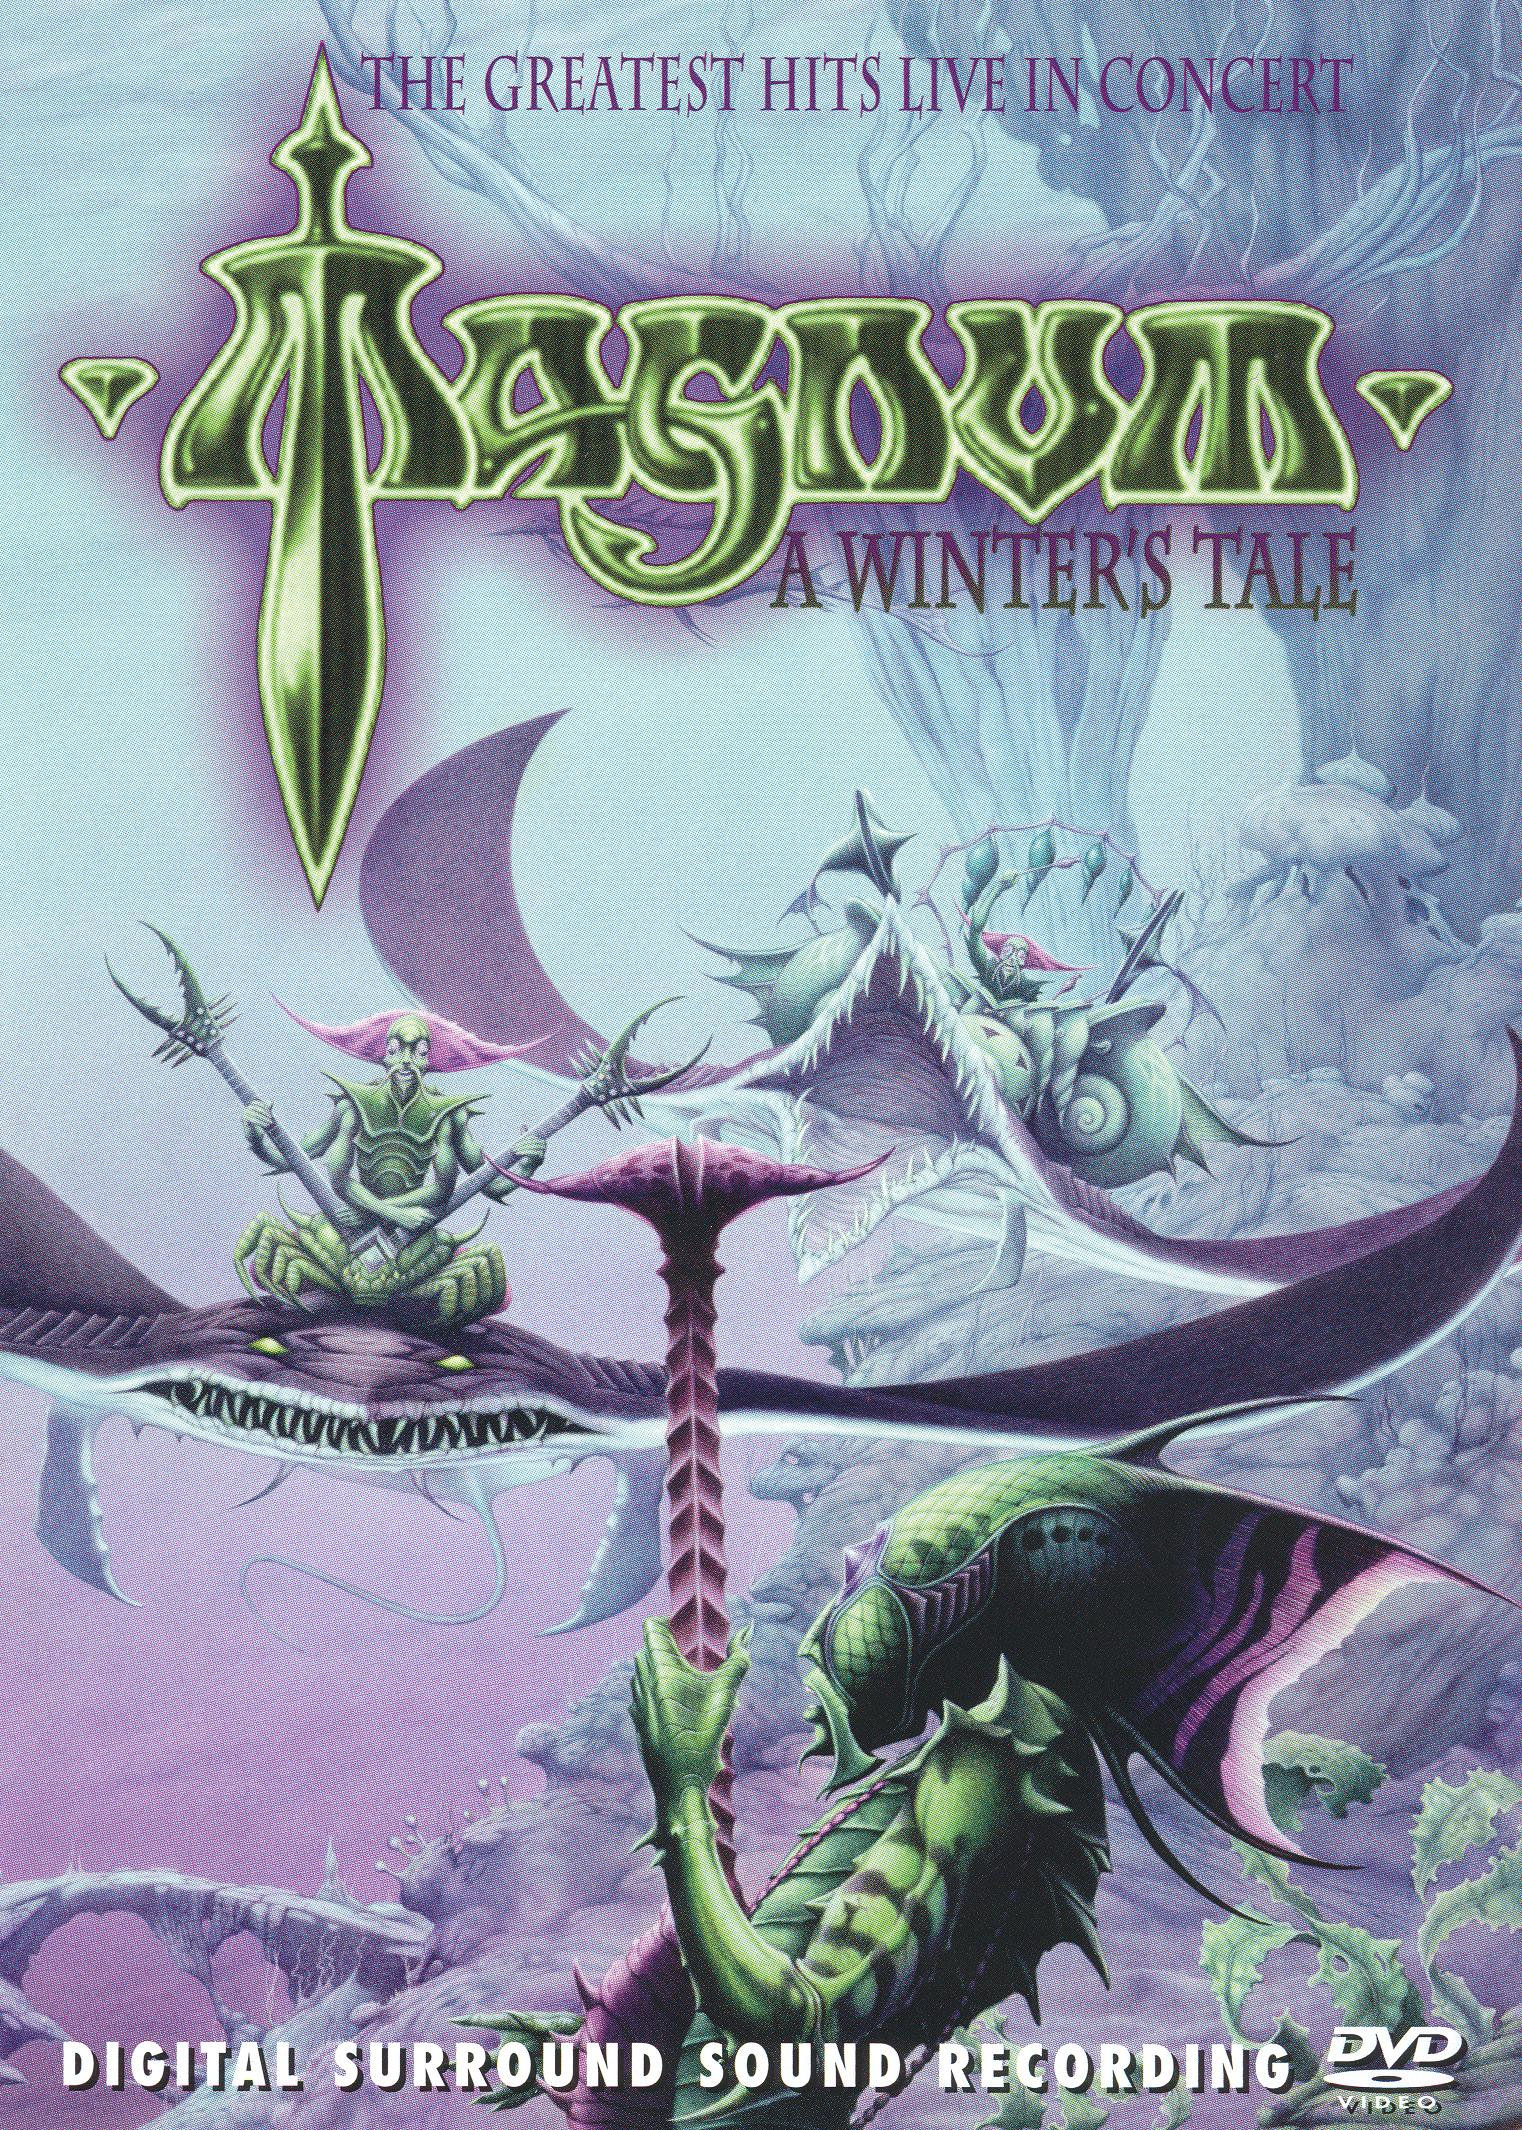 Masters From the Vaults: Magnum - A Winter's Tale